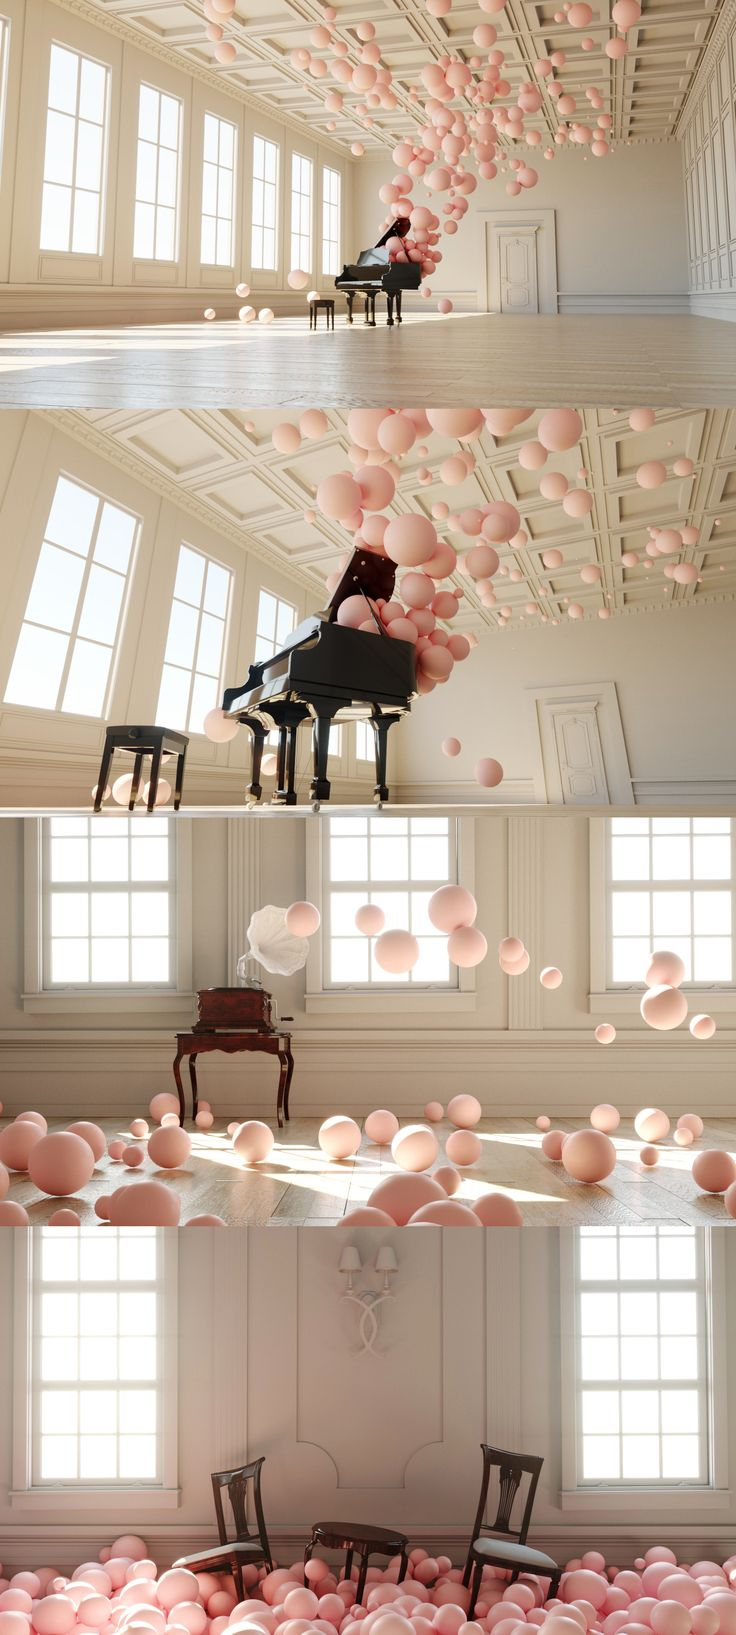 """In his delightful digital art series called """"Filling Spaces,"""" he shows what the sound might look like if we were capable of witnessing it in solid form, conveying how the immaterial splendor of a musical composition can suffuse an otherwise empty room. #music #art #photography #digitalart #inspiration #bubbles #pink #design #artlovers"""